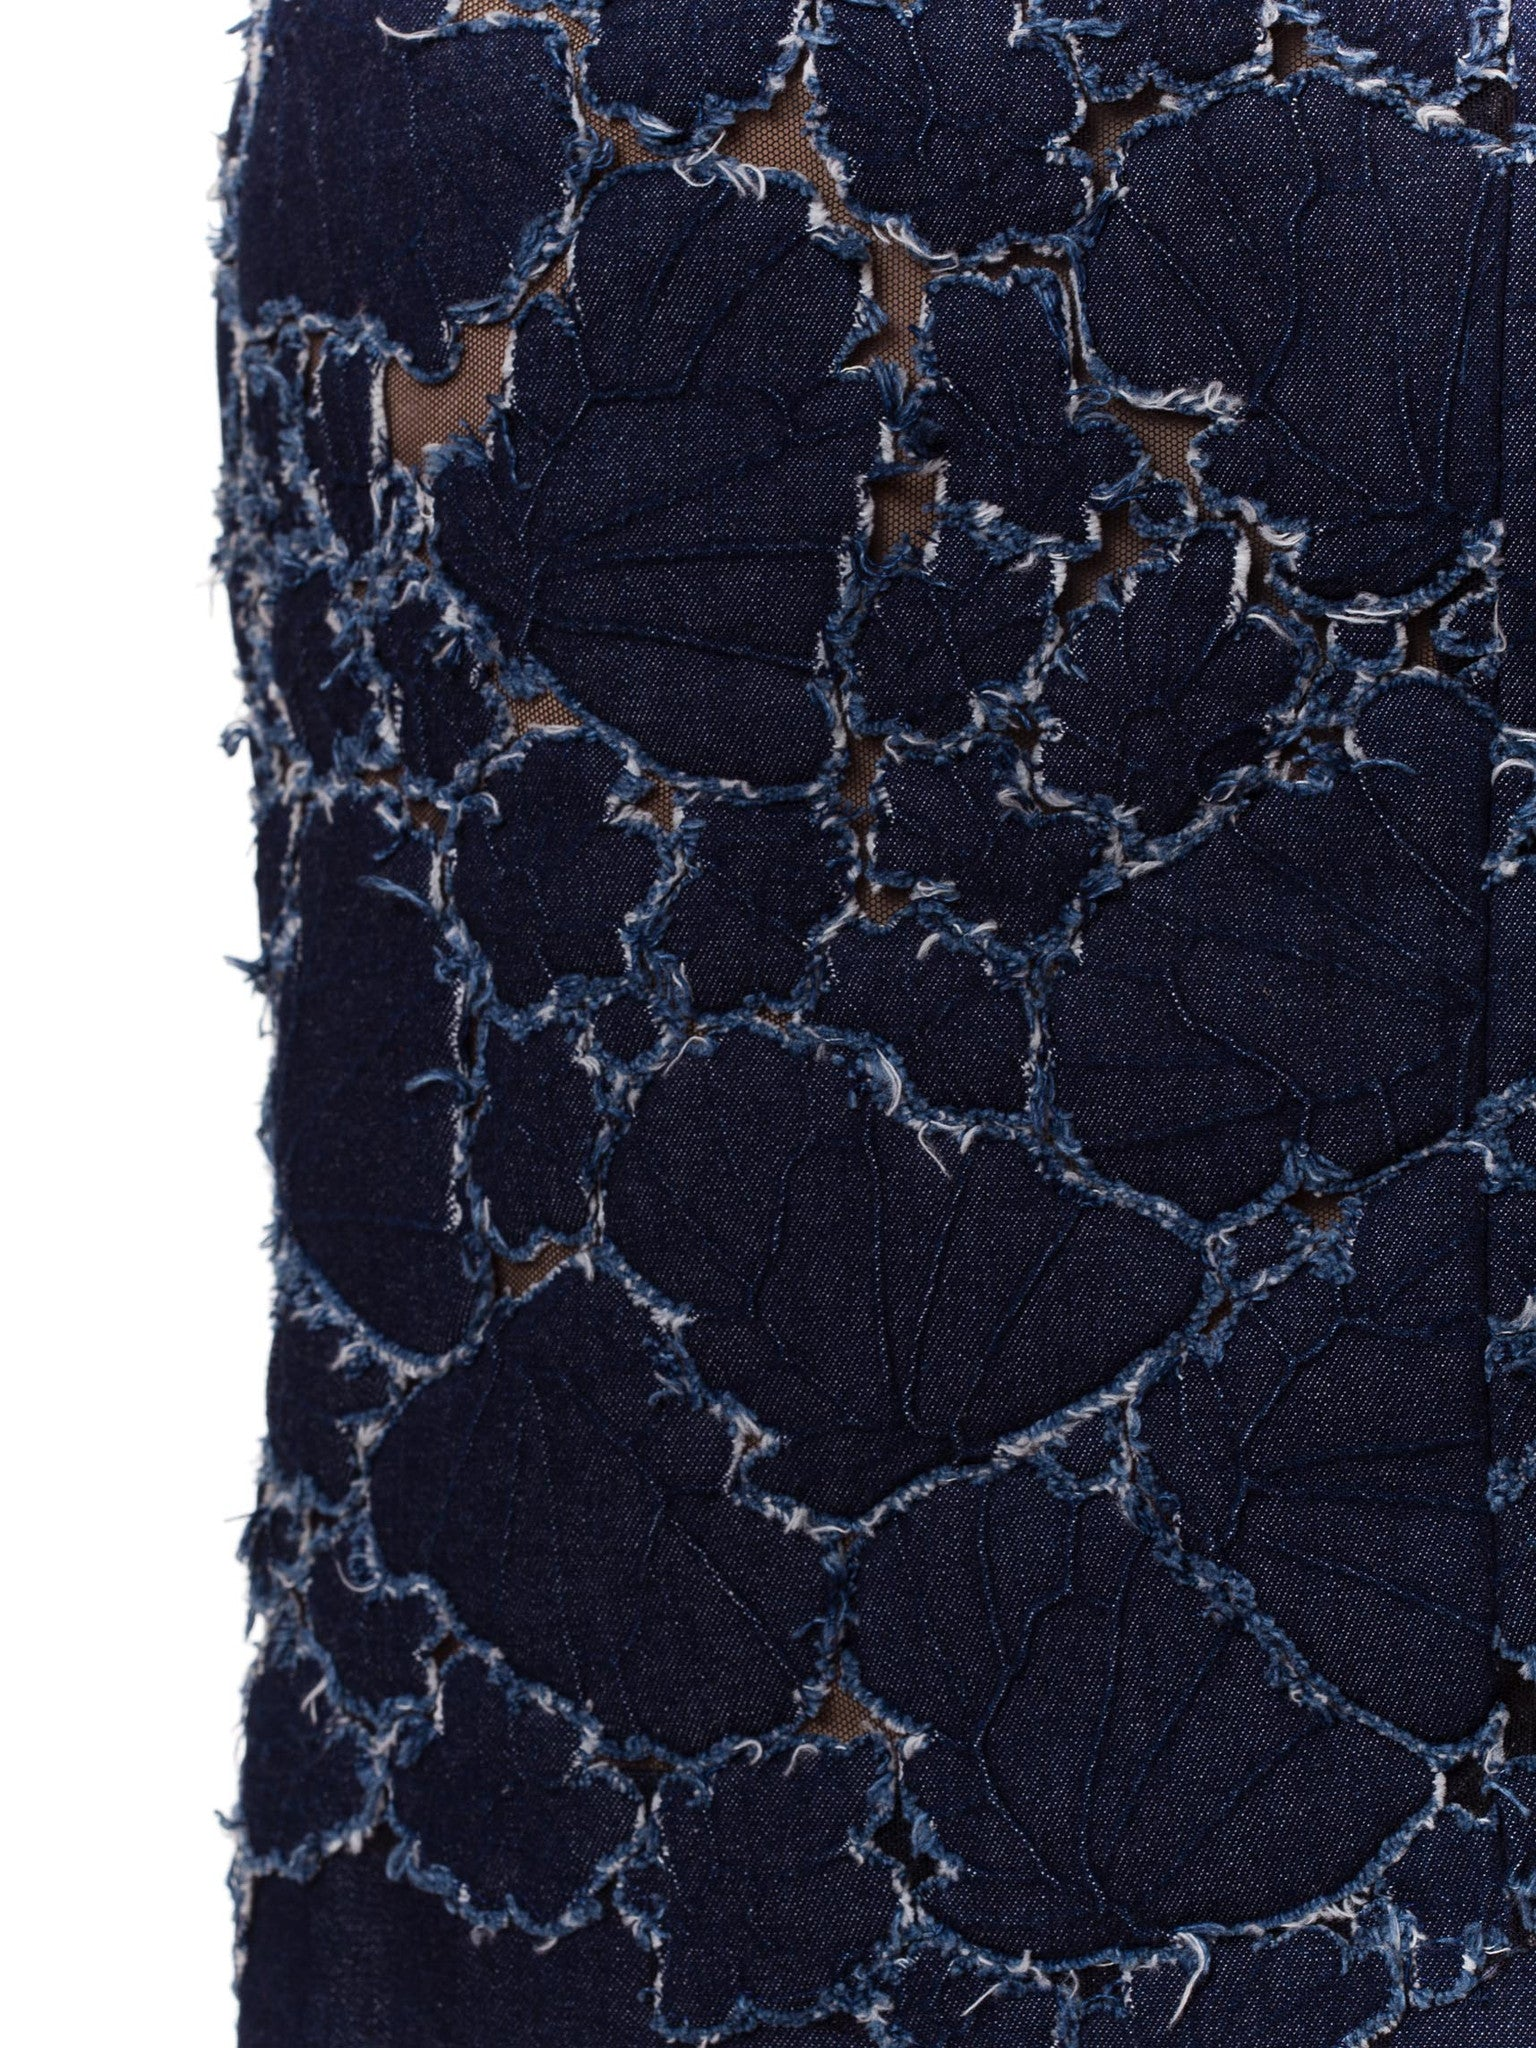 1980S  THIERRY MUGLER COUTURE Cotton Denim Leaves Appliquéd Onto Stretch Net Skirt